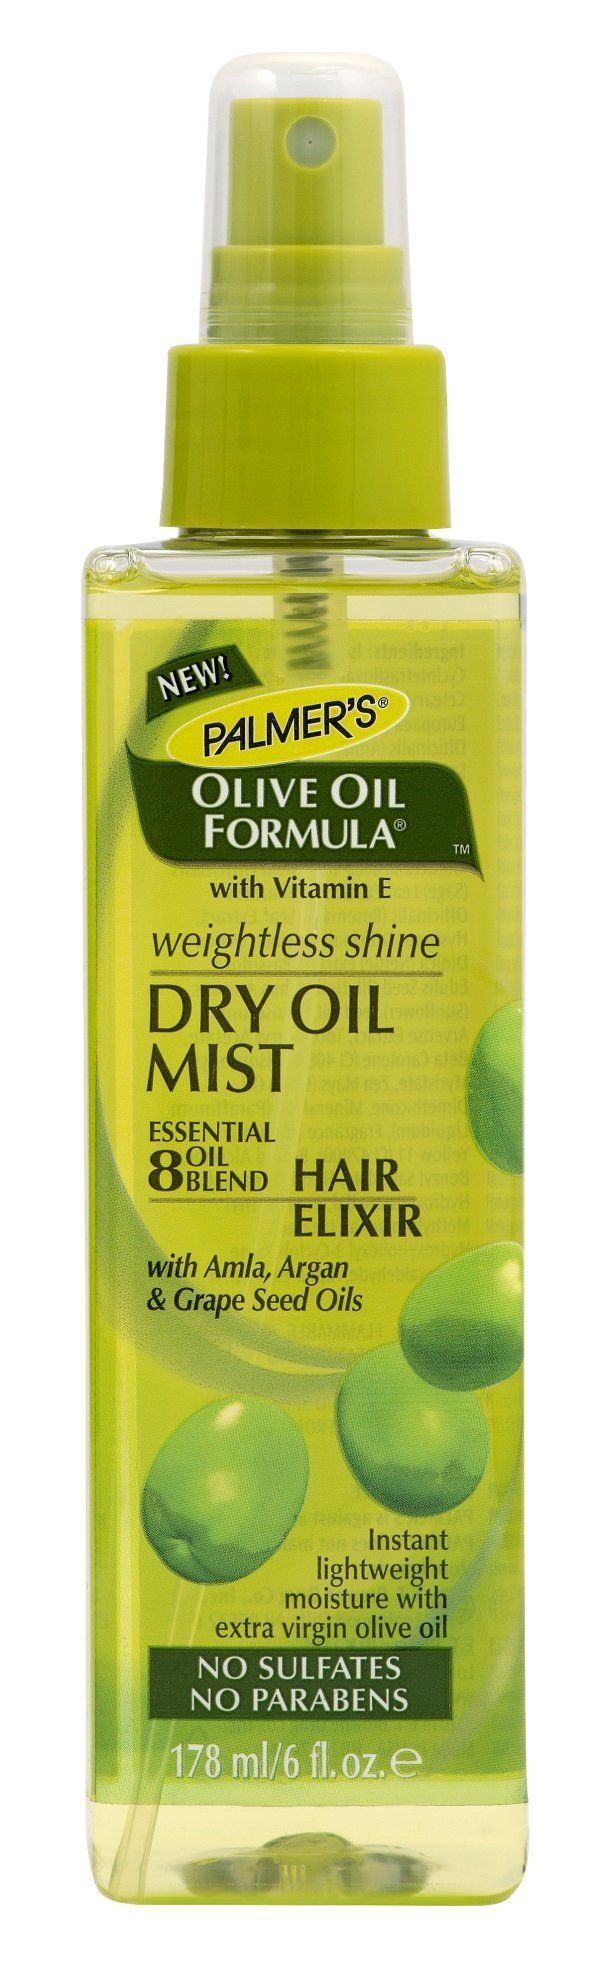 Palmer's Dry Oil Mist Weightless Shine